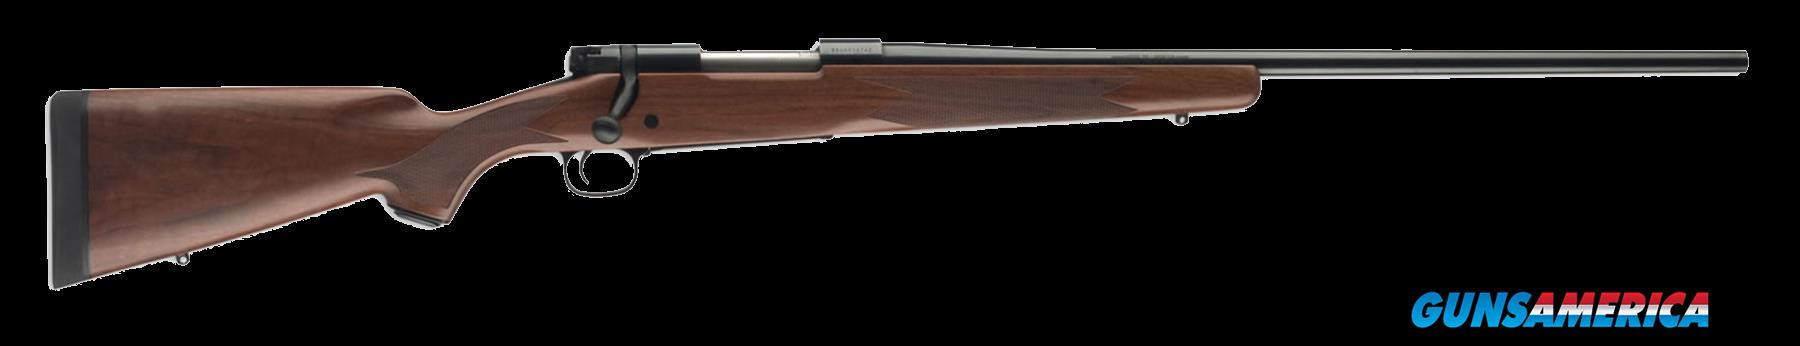 "Winchester Guns 535202236 70 Sporter Bolt 338 Win Mag 26"" 5+1 Grade I Walnut Stk Blued  Guns > Rifles > W Misc Rifles"